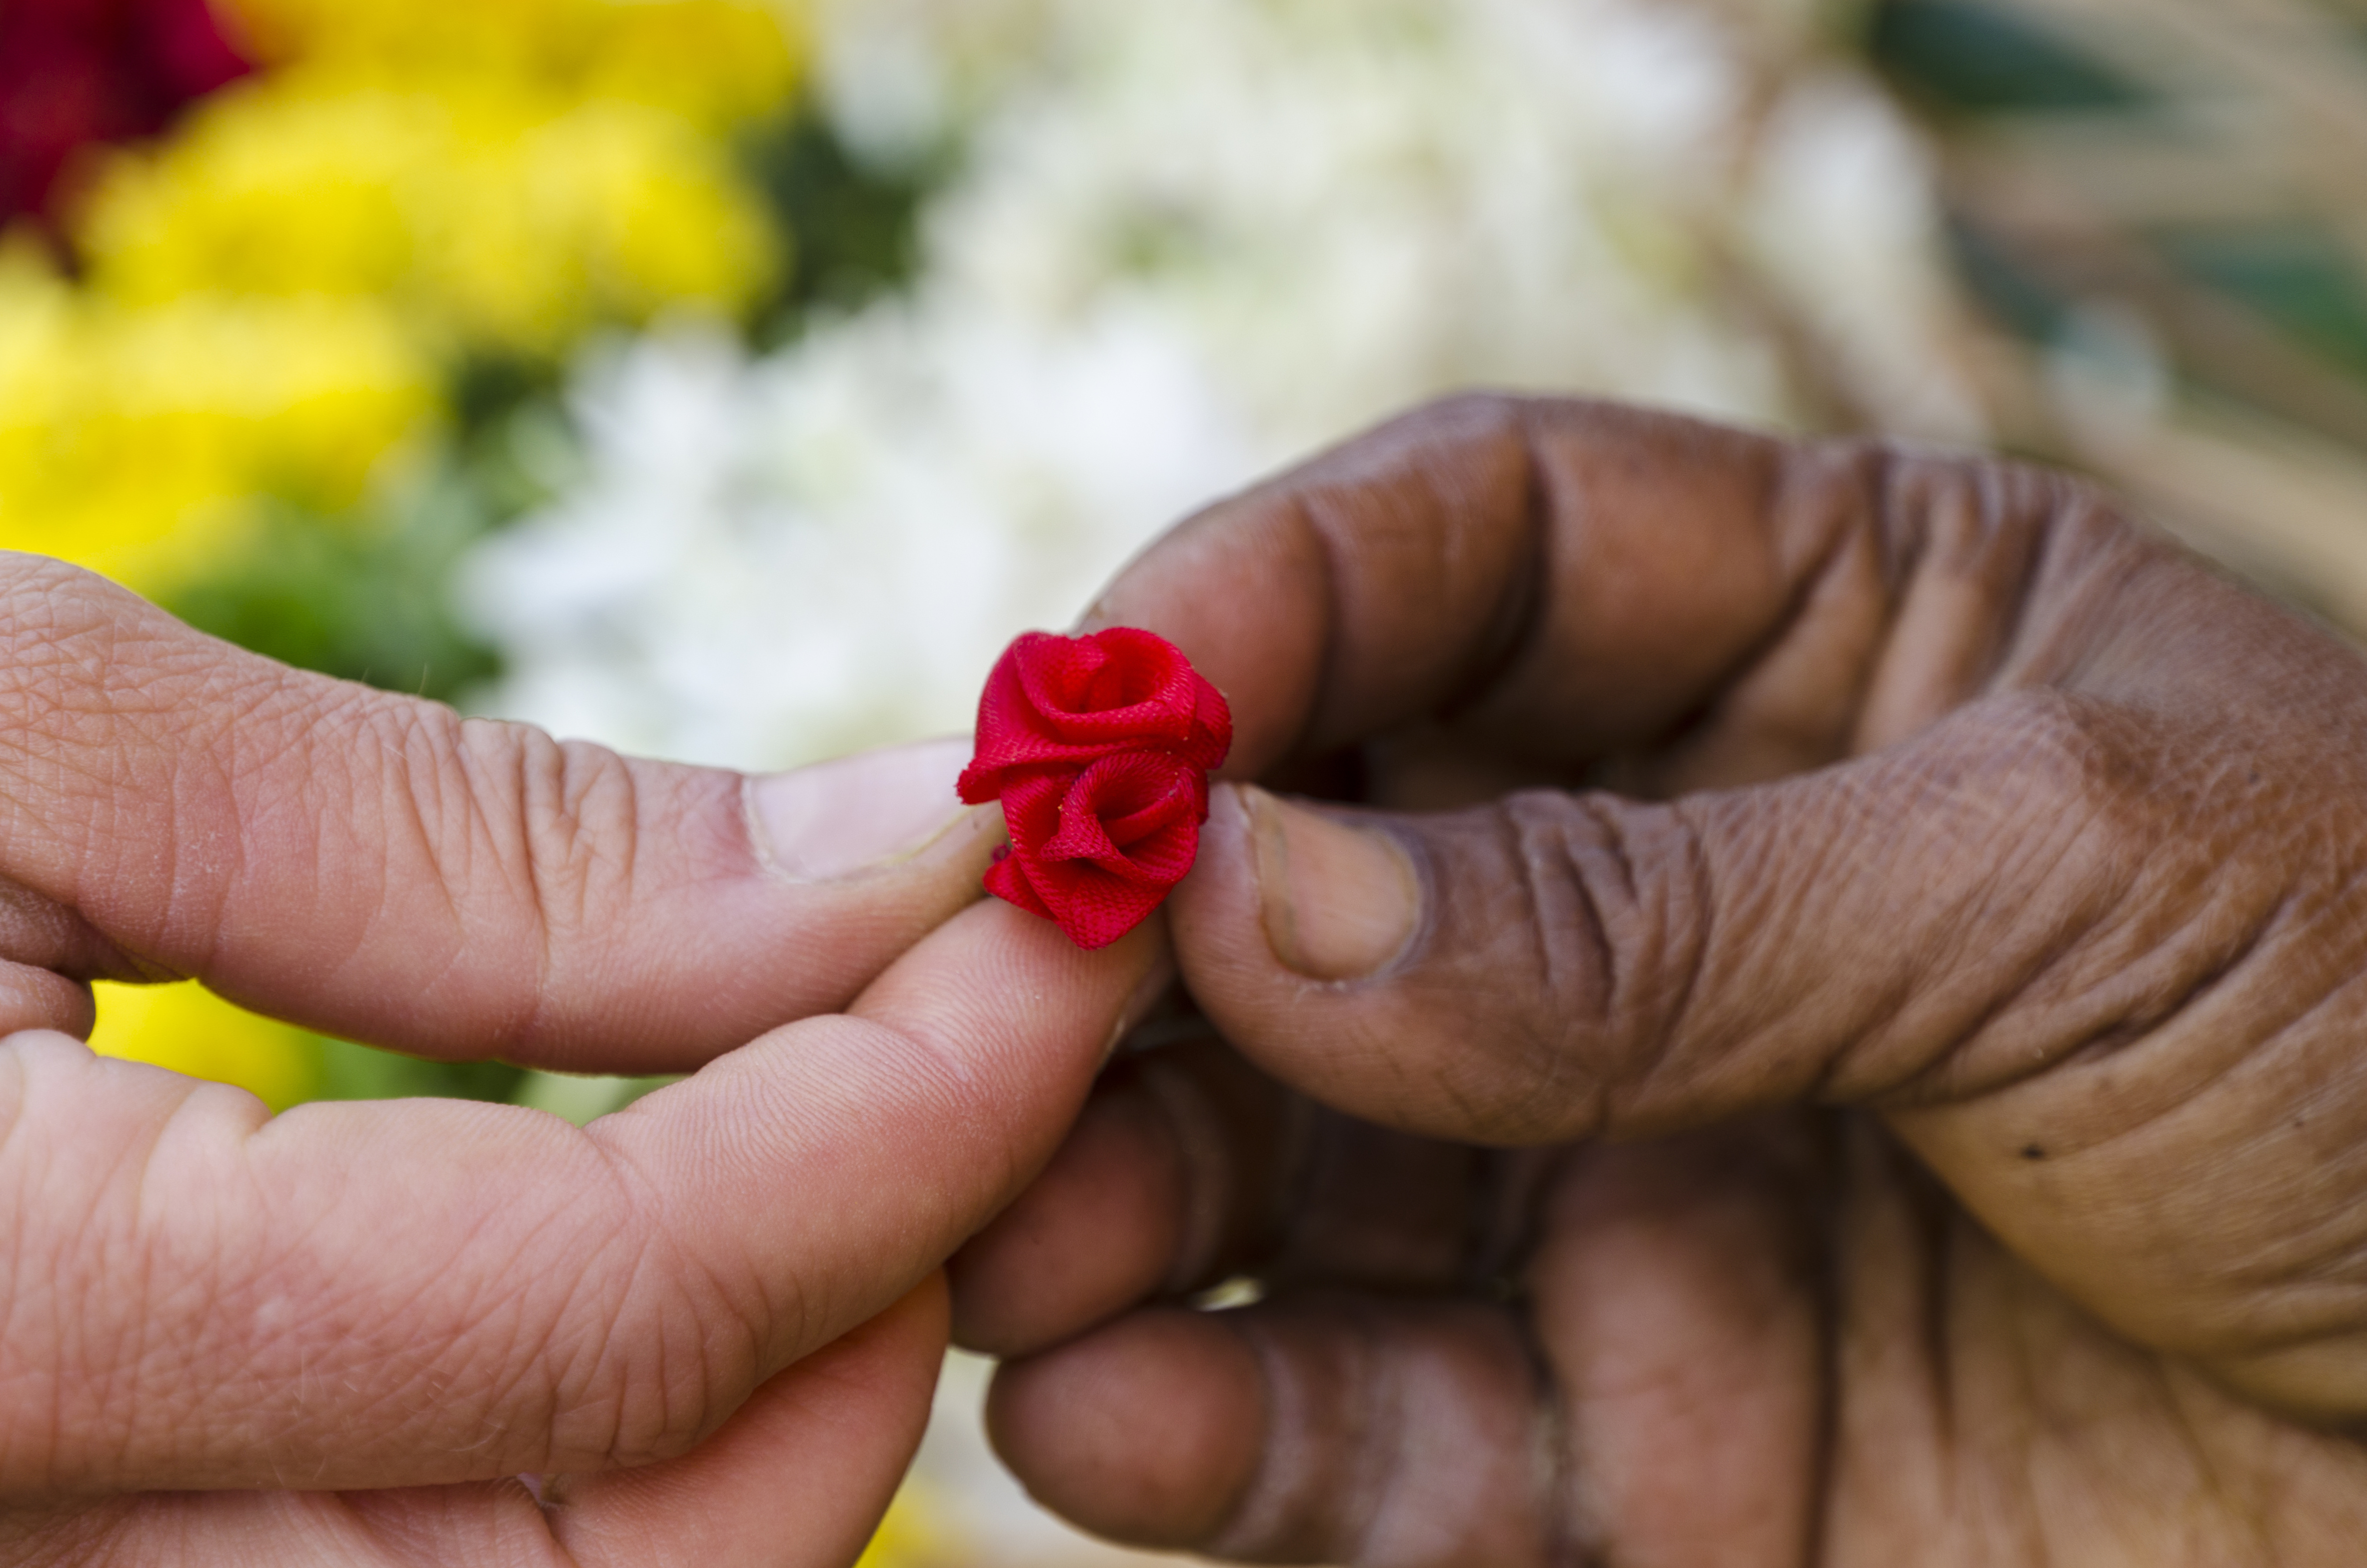 Little artificial flower given to a tourist for gift as a